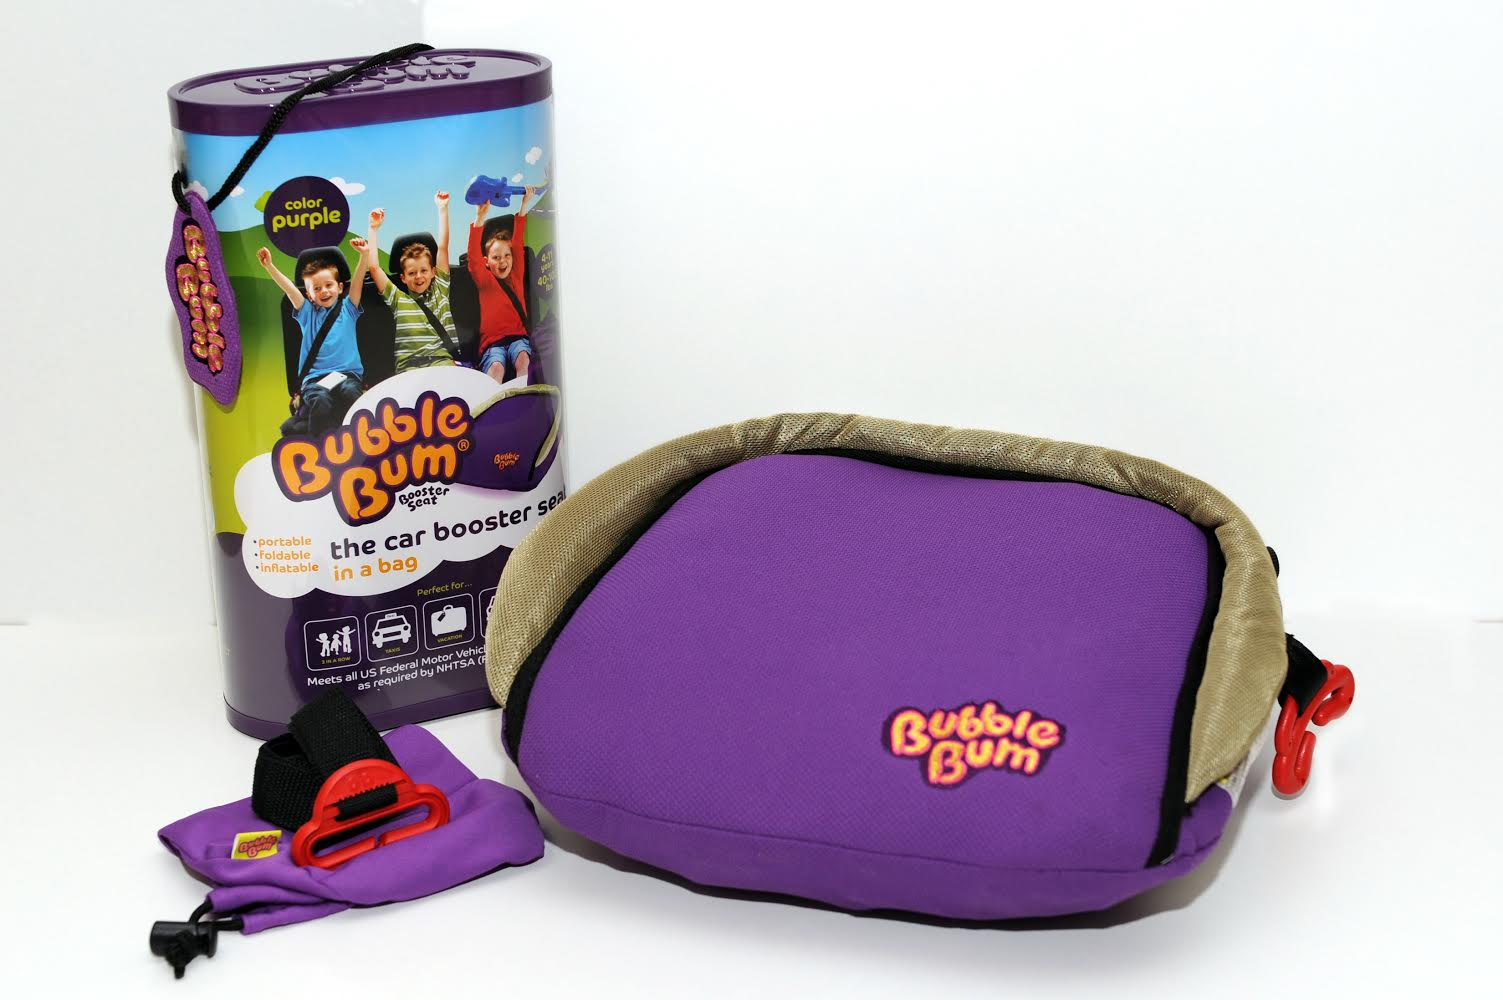 Bubblebum inflatable car booster seat, $29.99 @bubblebum.co